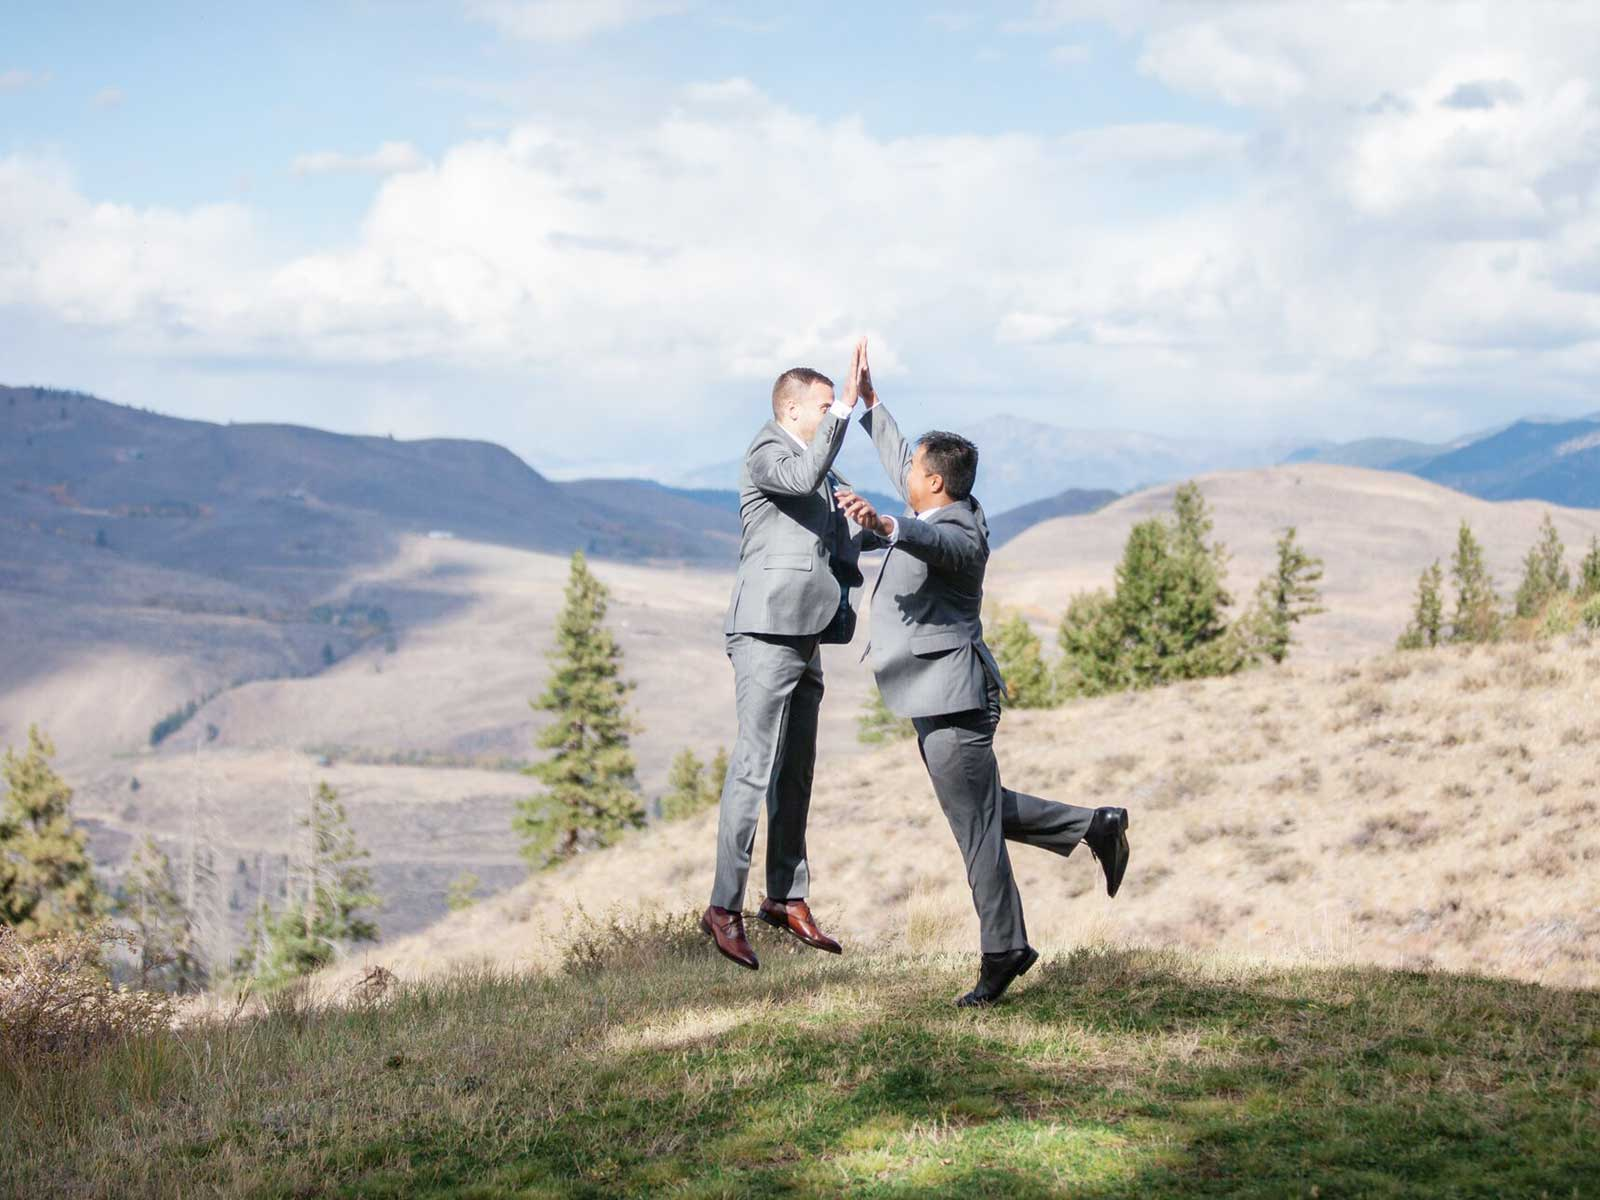 groom and best man high five